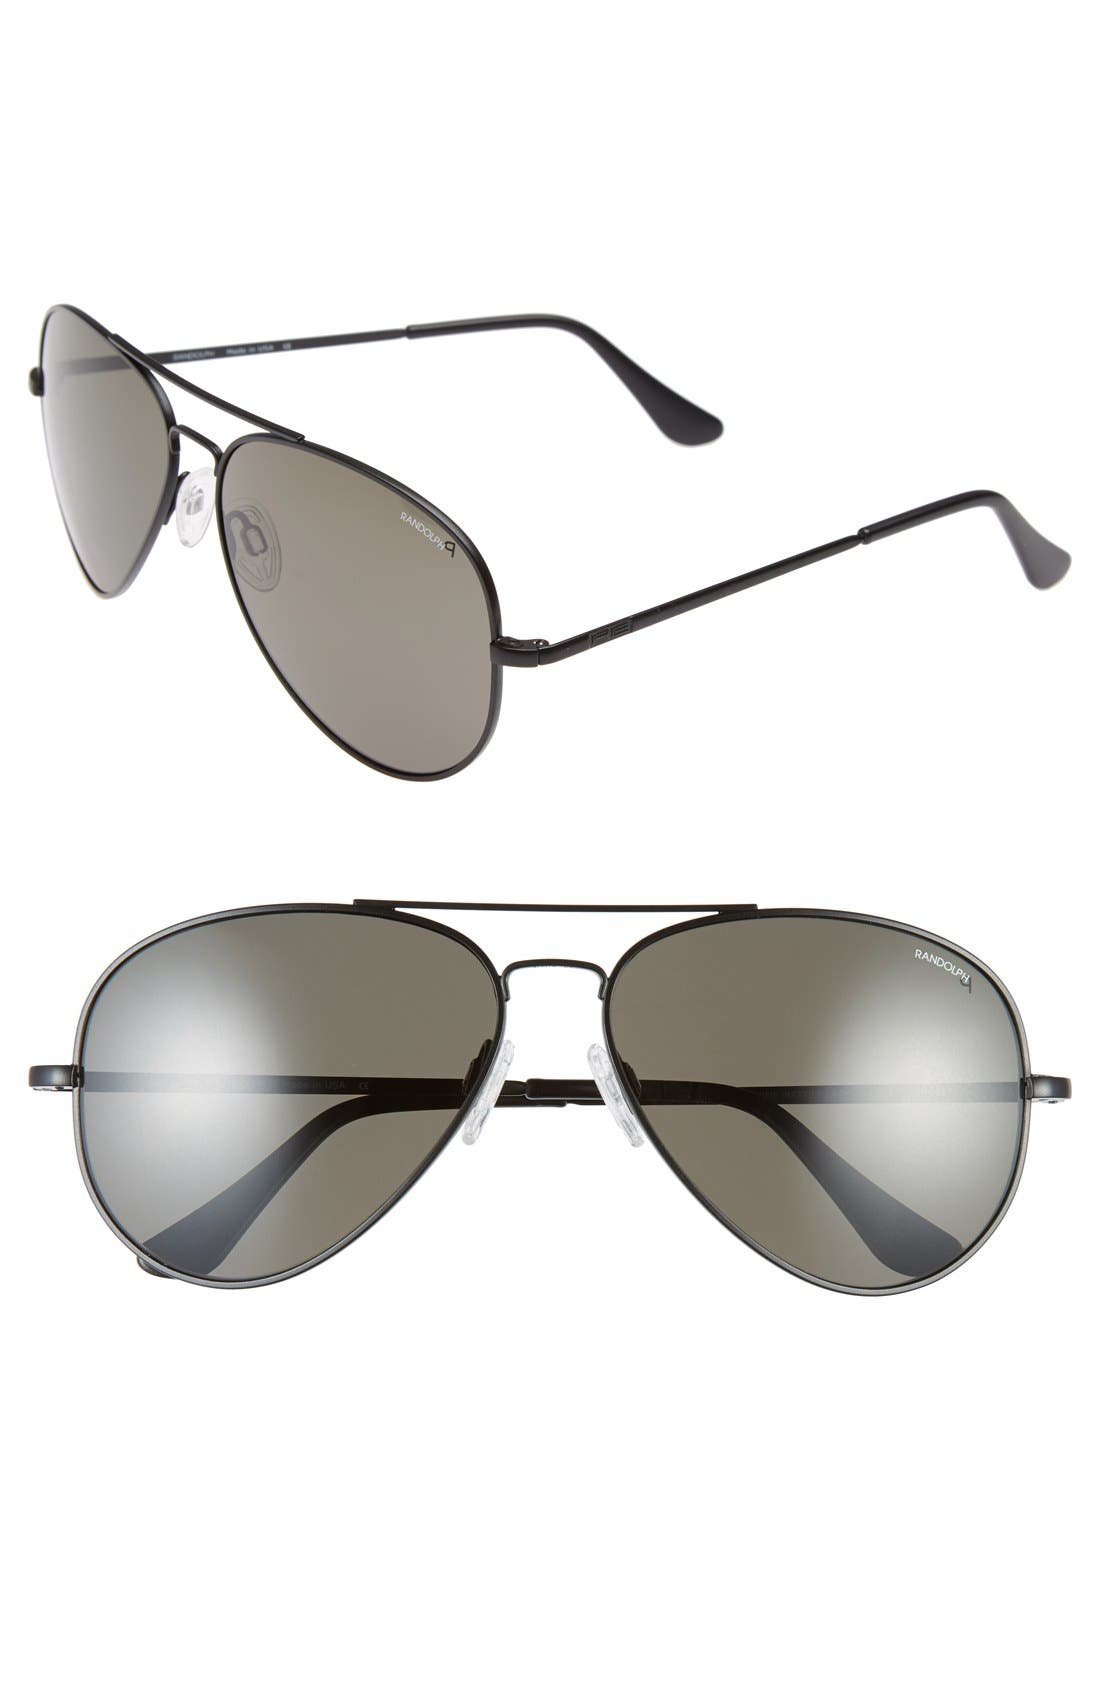 Alternate Image 1 Selected - Randolph Engineering 'Concorde' 61mm Aviator Sunglasses